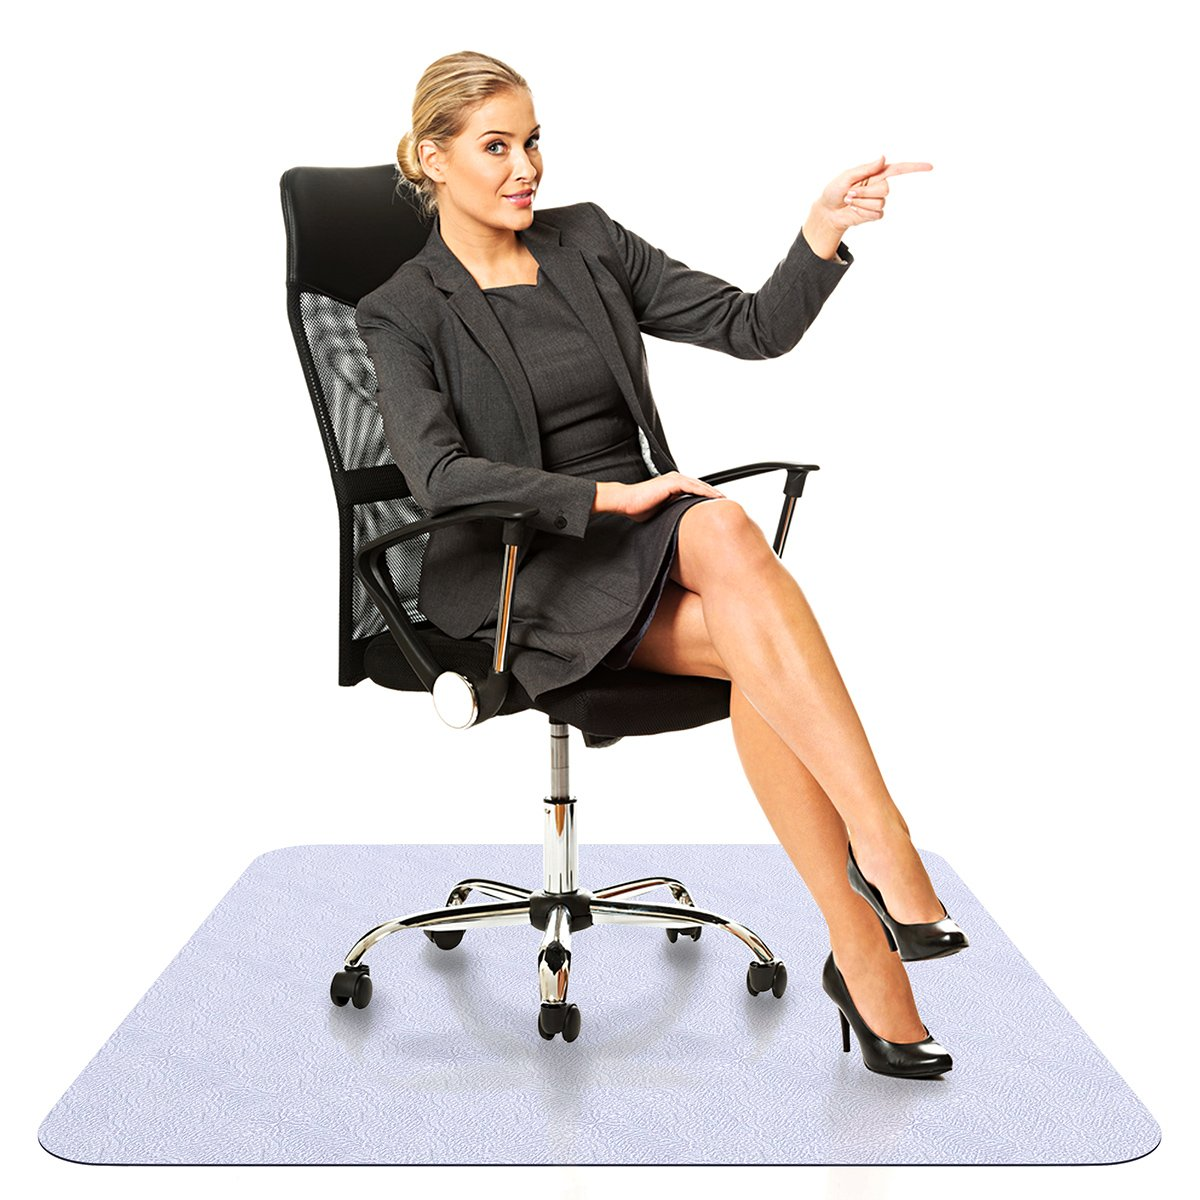 Under The Desk Mat Best For Home Office Use Non Toxic And Bpa Free Plastic Protector Hynawin Black Chair Mat 36x48 For Hard Wood Floor Anti Slip